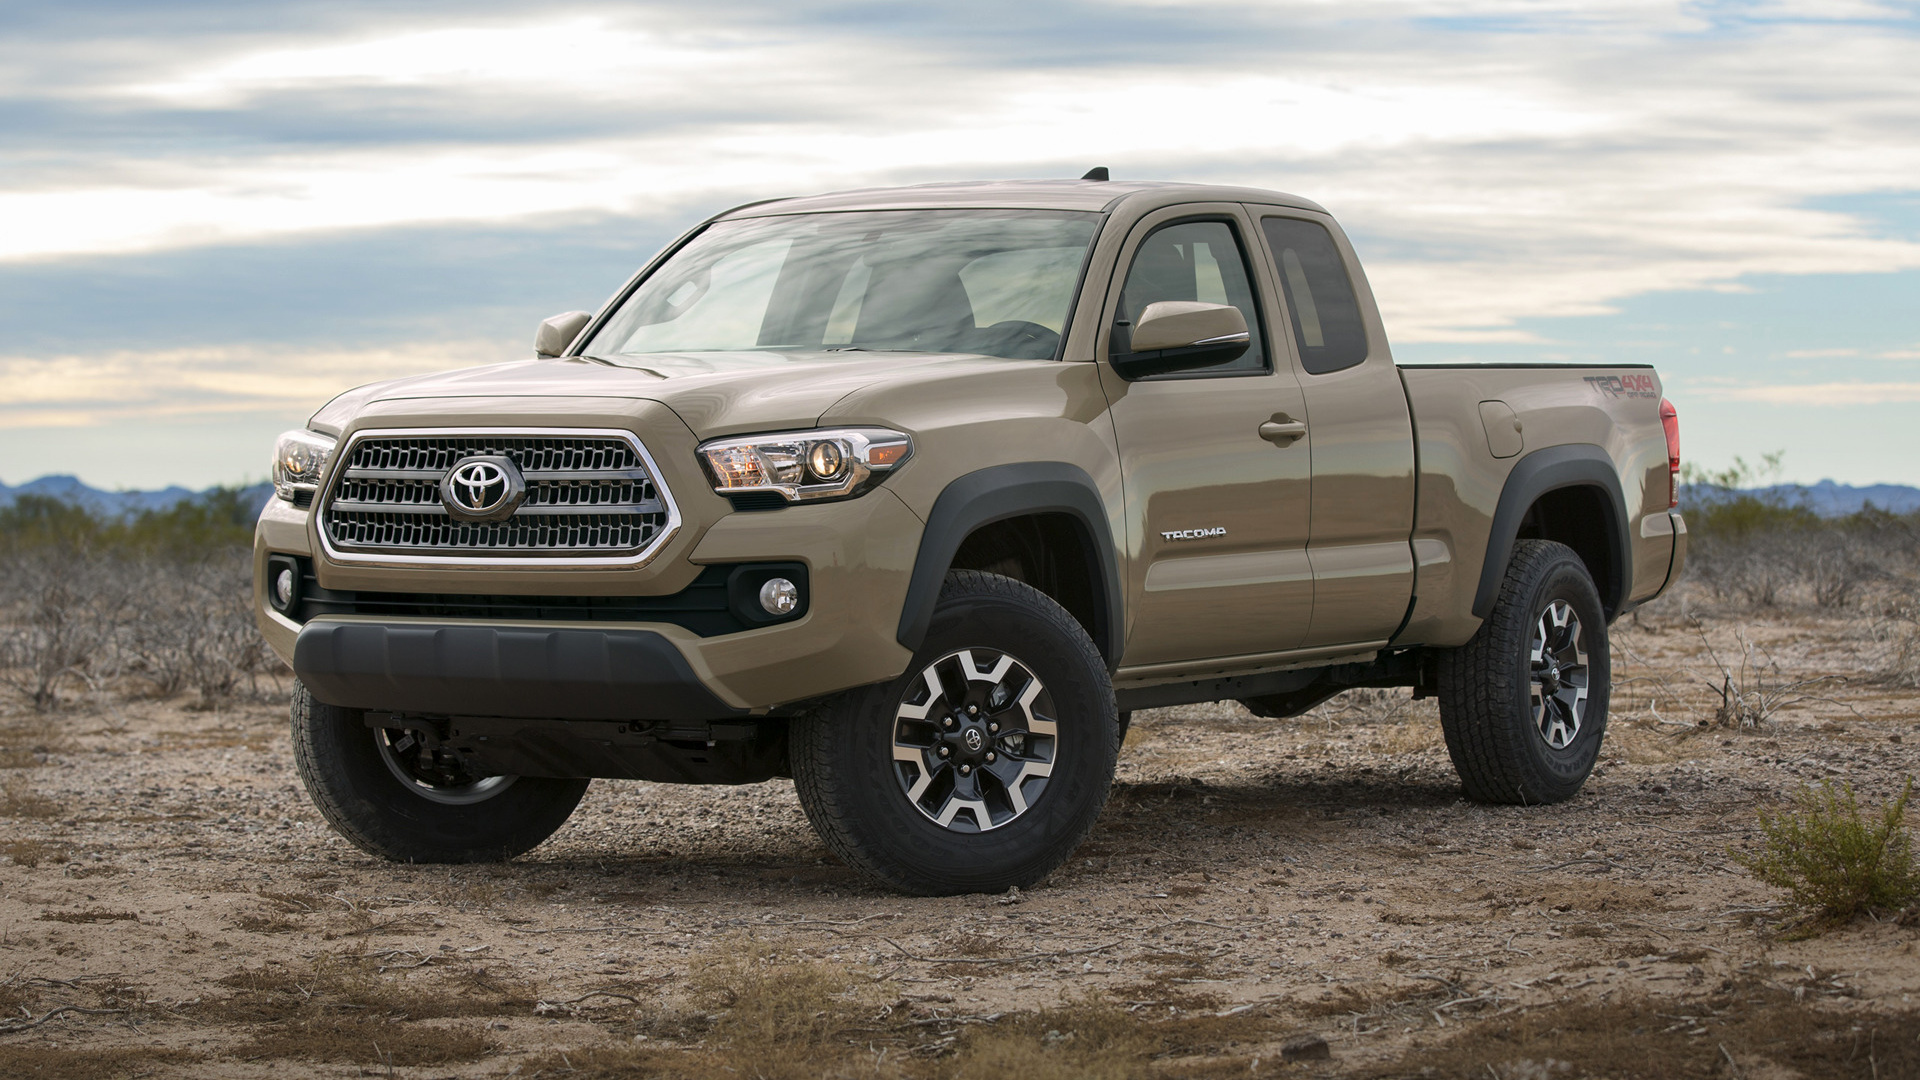 2016 Toyota Tacoma TRD Off-Road Access Cab - Wallpapers ...